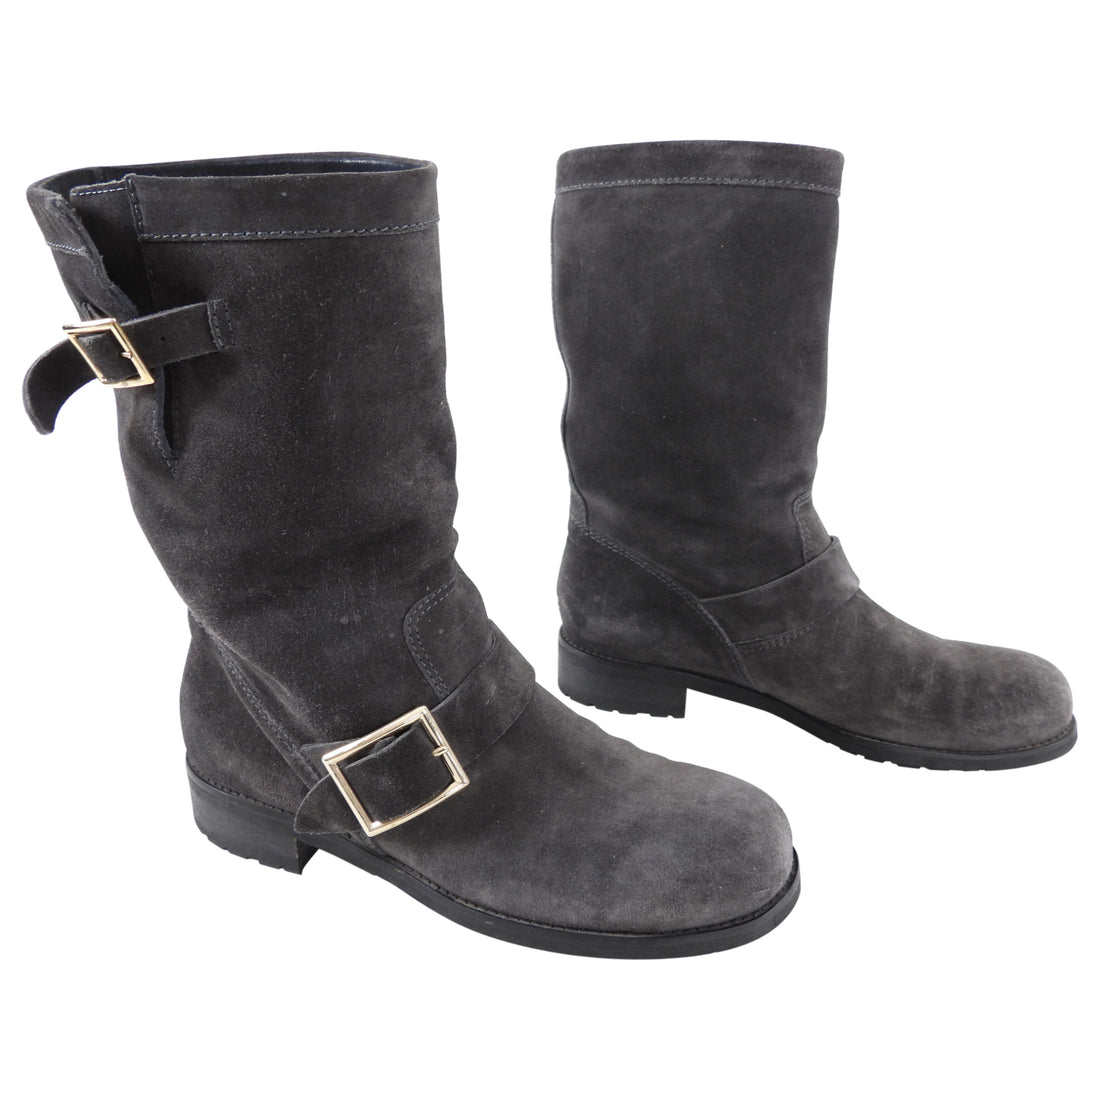 Jimmy Choo Grey Charcoal Suede Biker Boots - 38.5 / USA 8